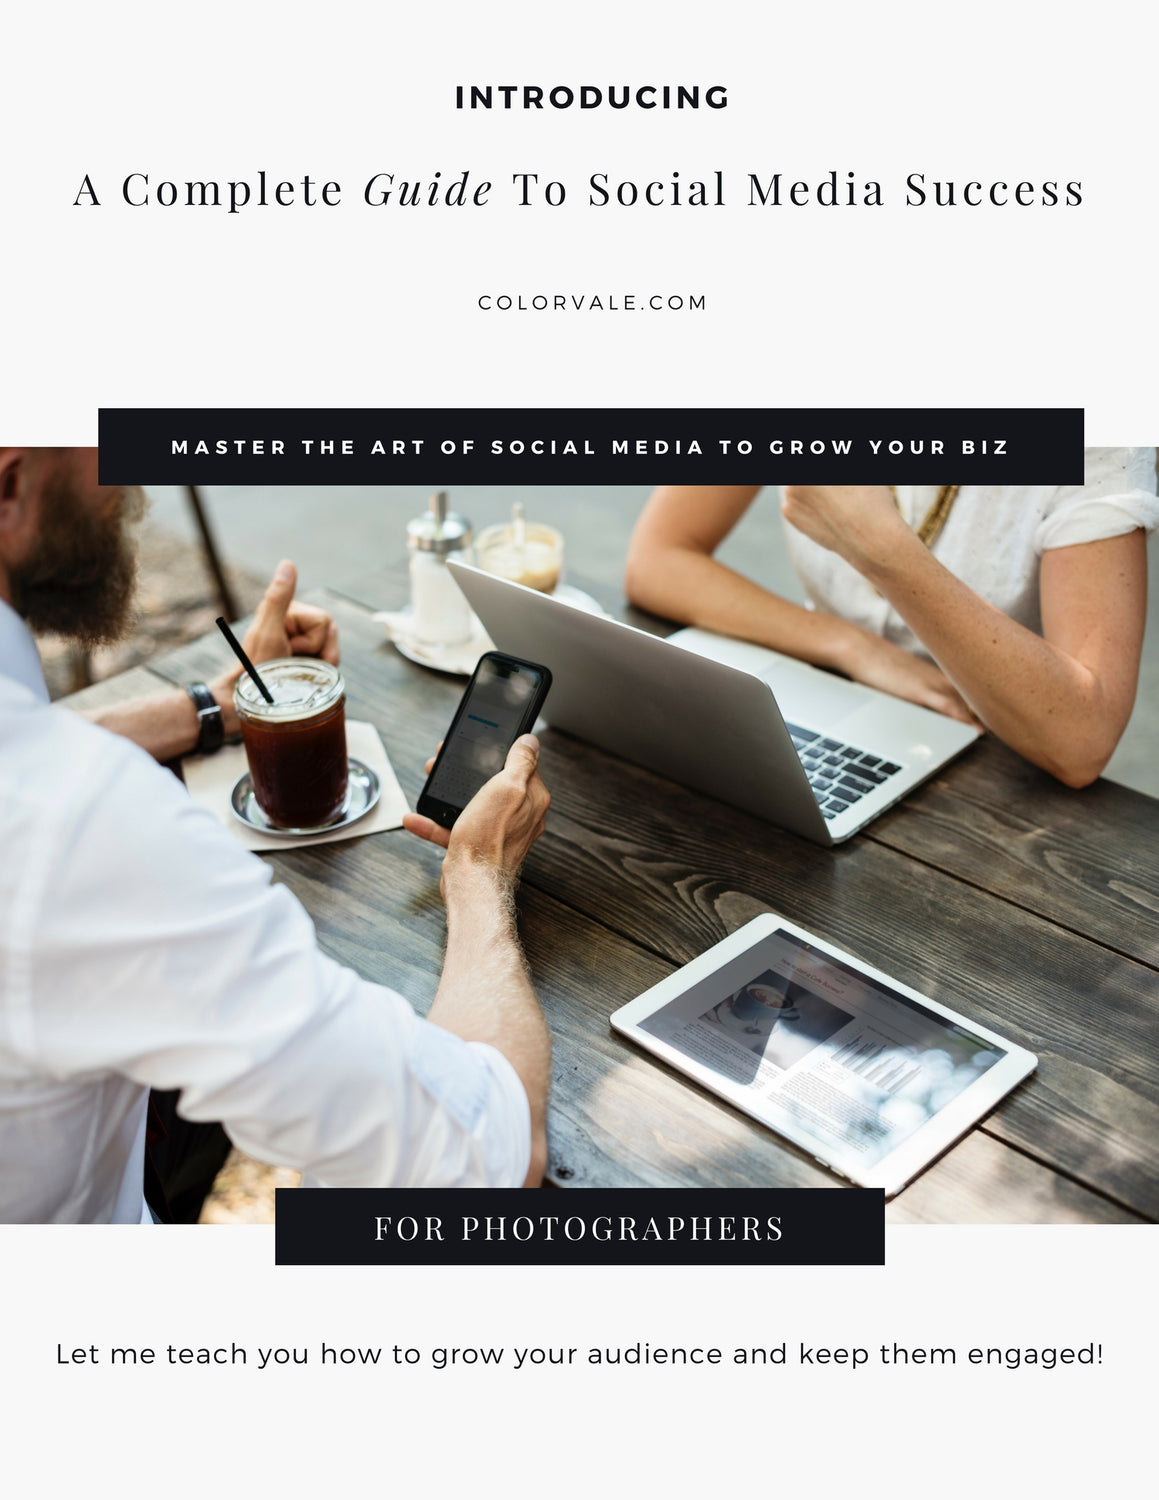 A Complete Guide To Social Media Success for Photographers